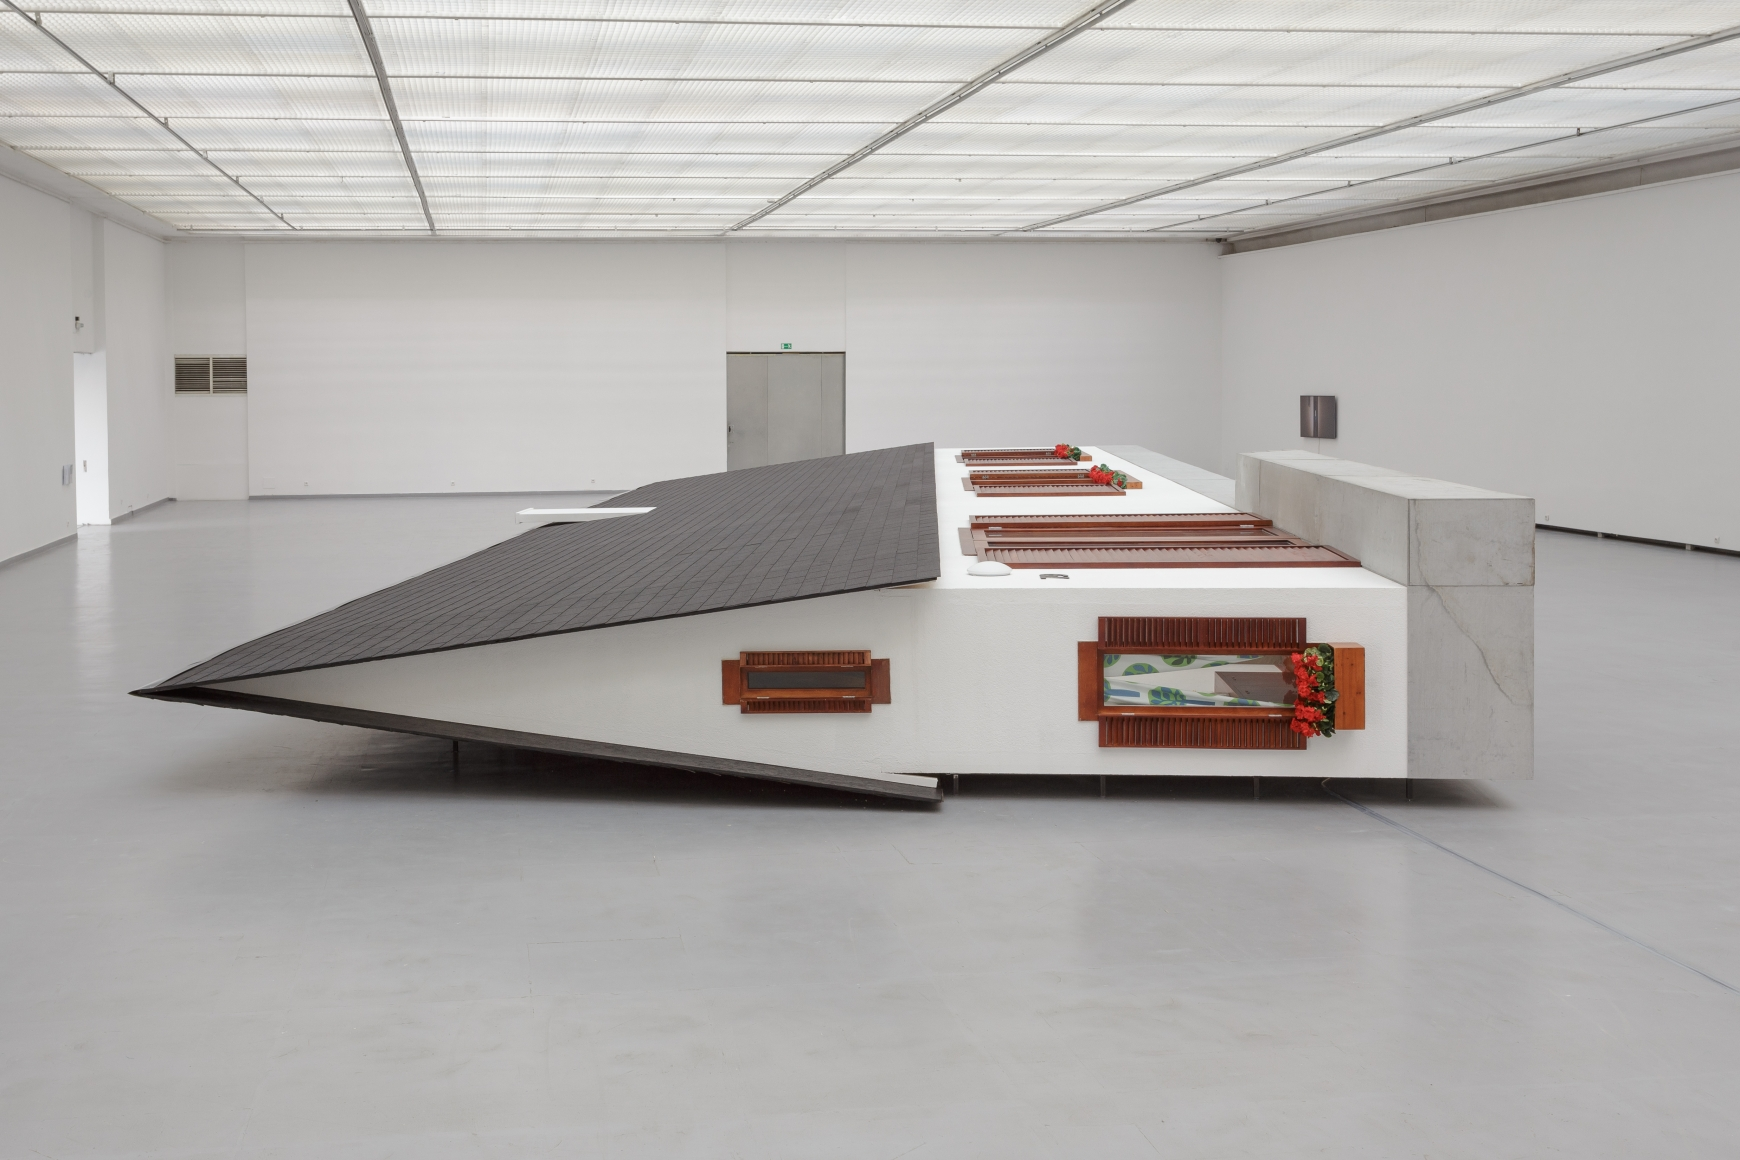 Erwin Wurm, Narrow House